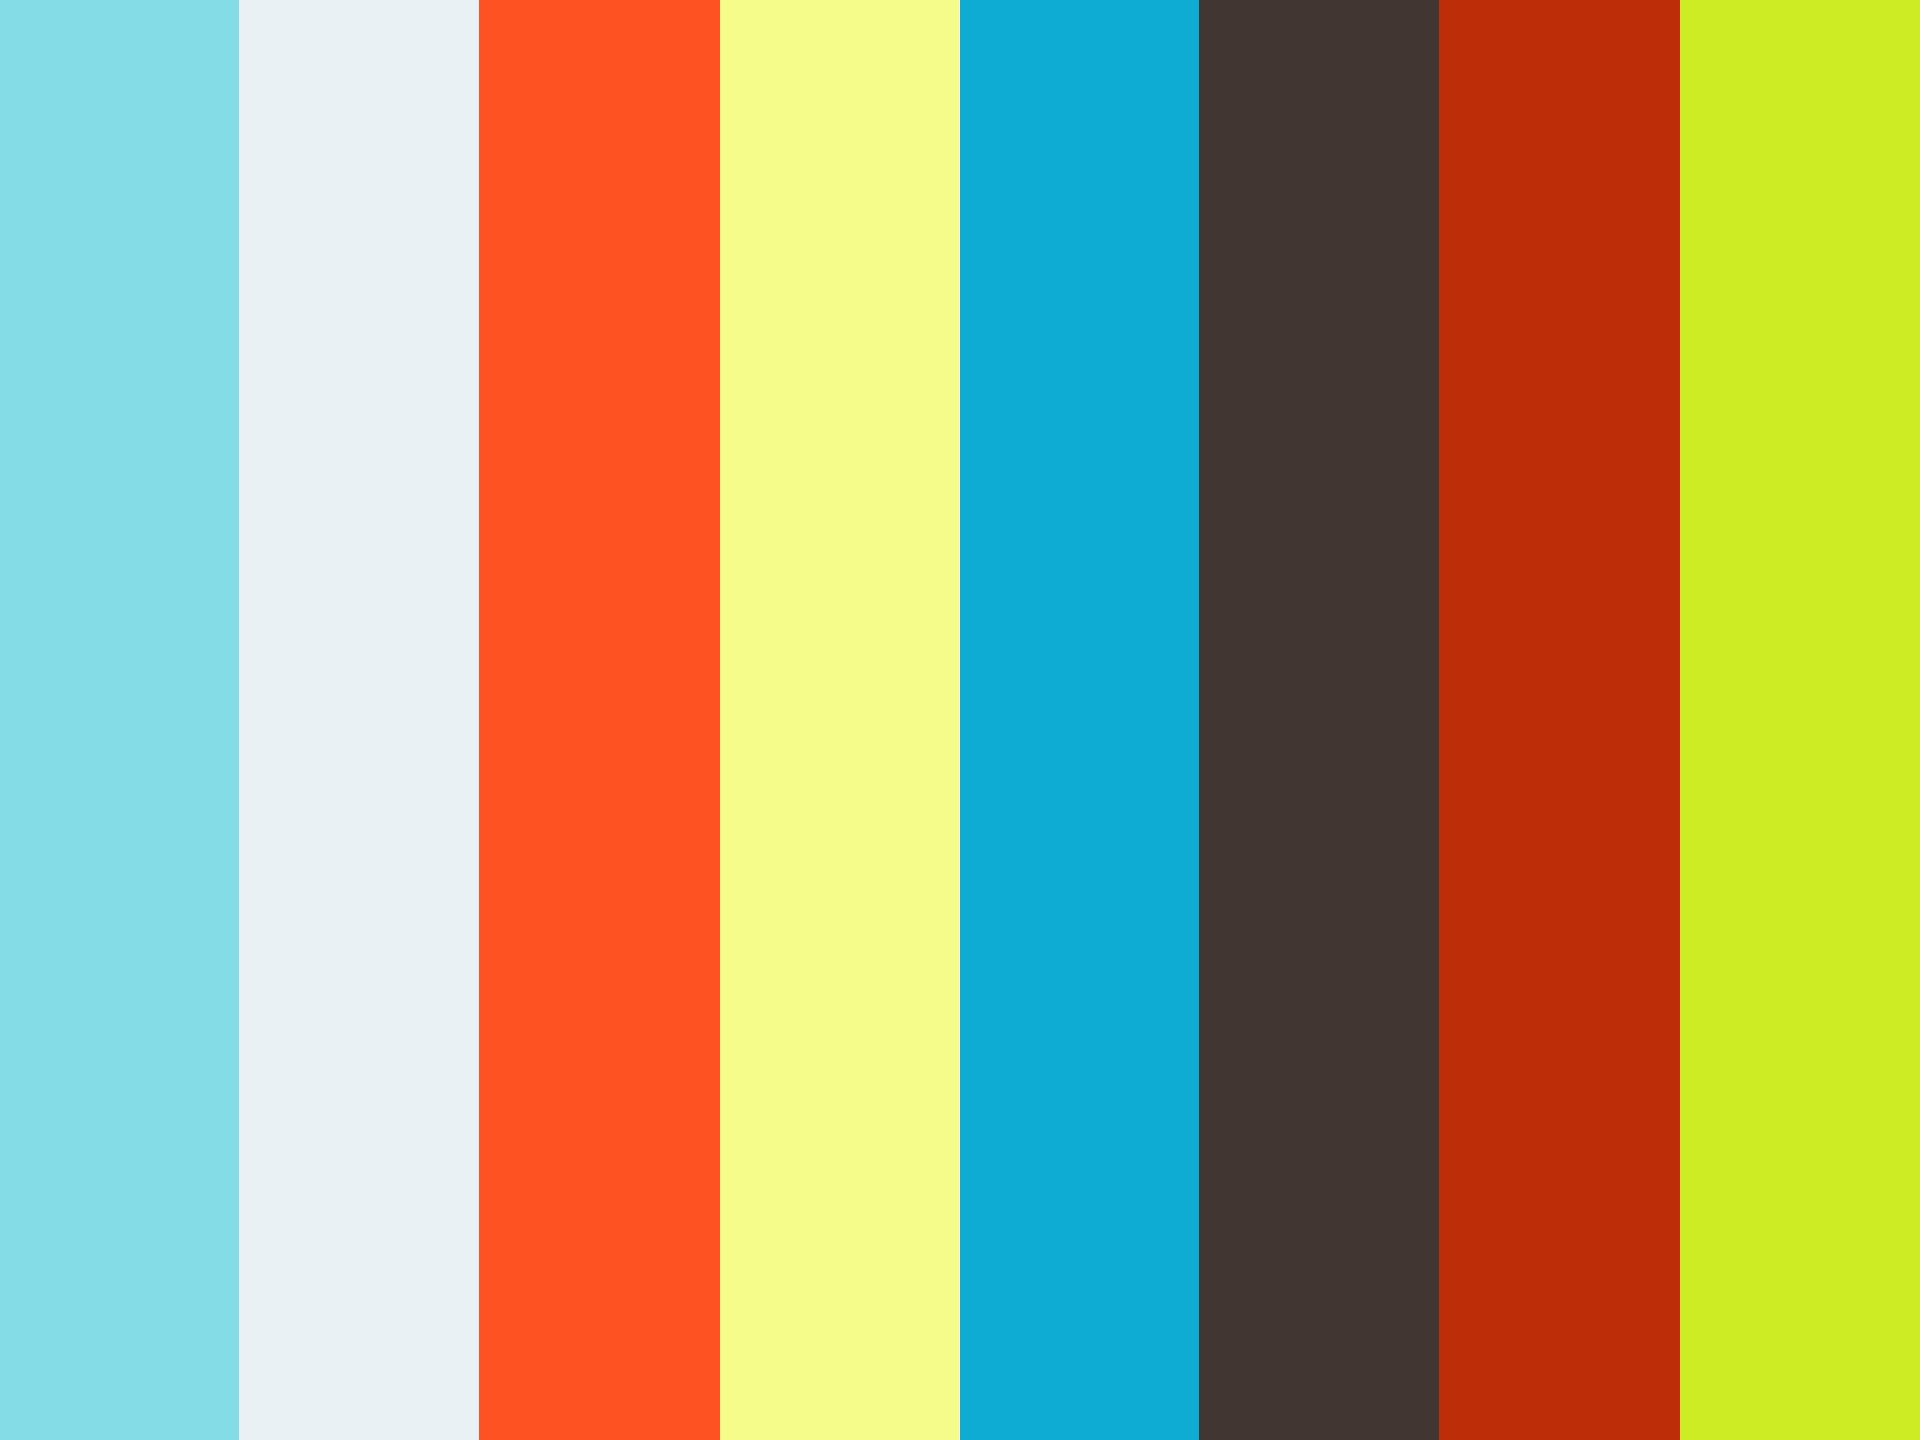 whitehorse die alone six shooter records video